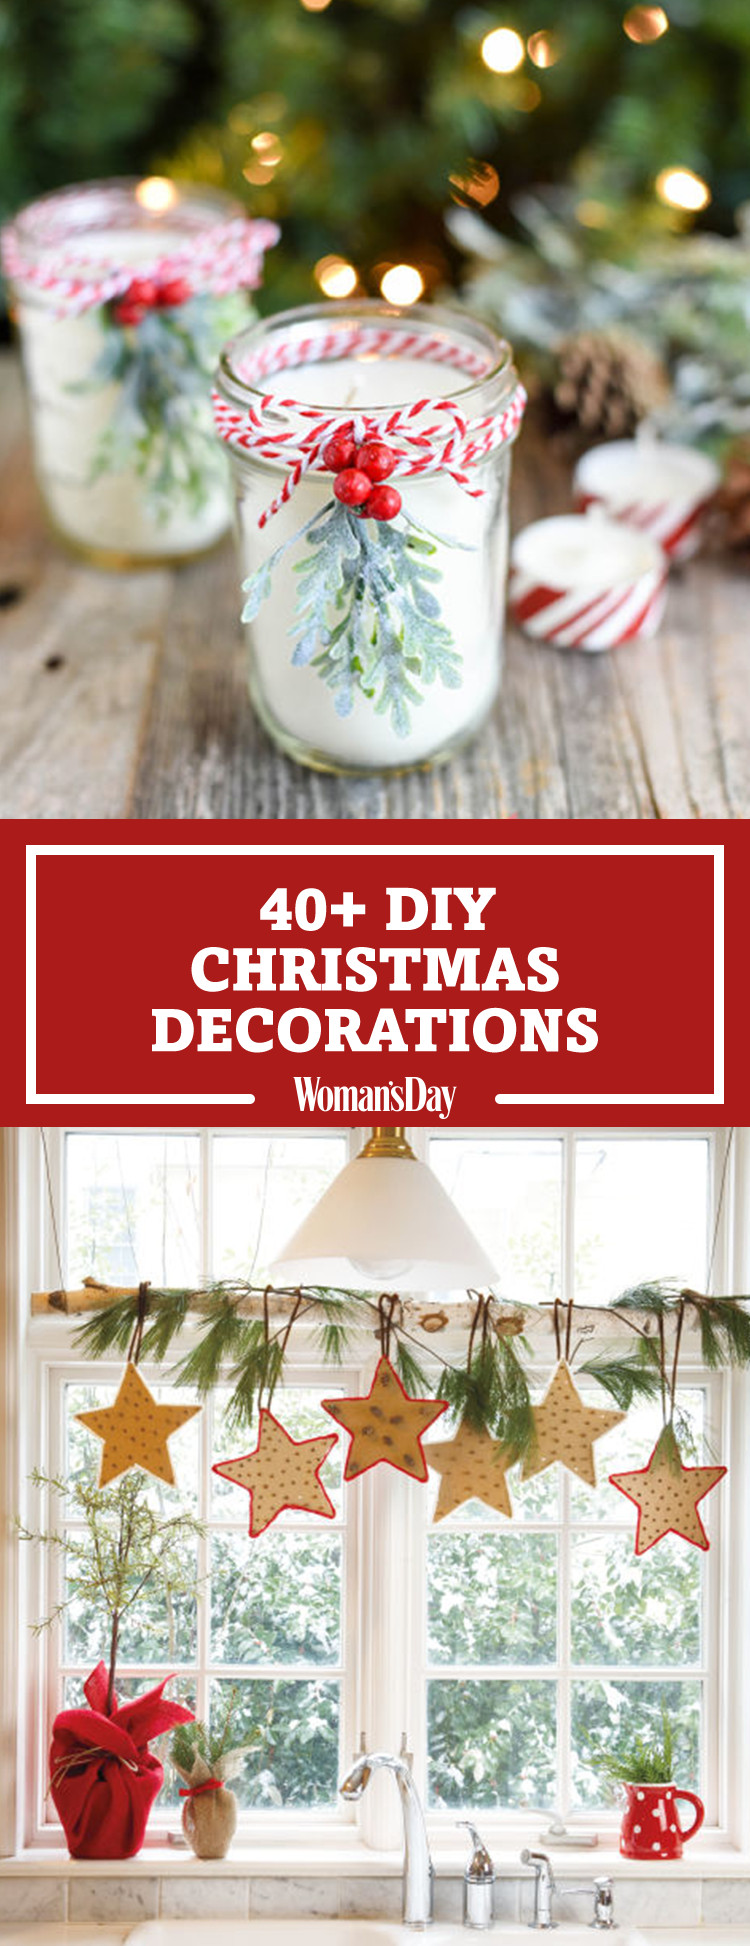 Best ideas about Christmas DIY Decorations . Save or Pin 47 Easy DIY Christmas Decorations Homemade Ideas for Now.